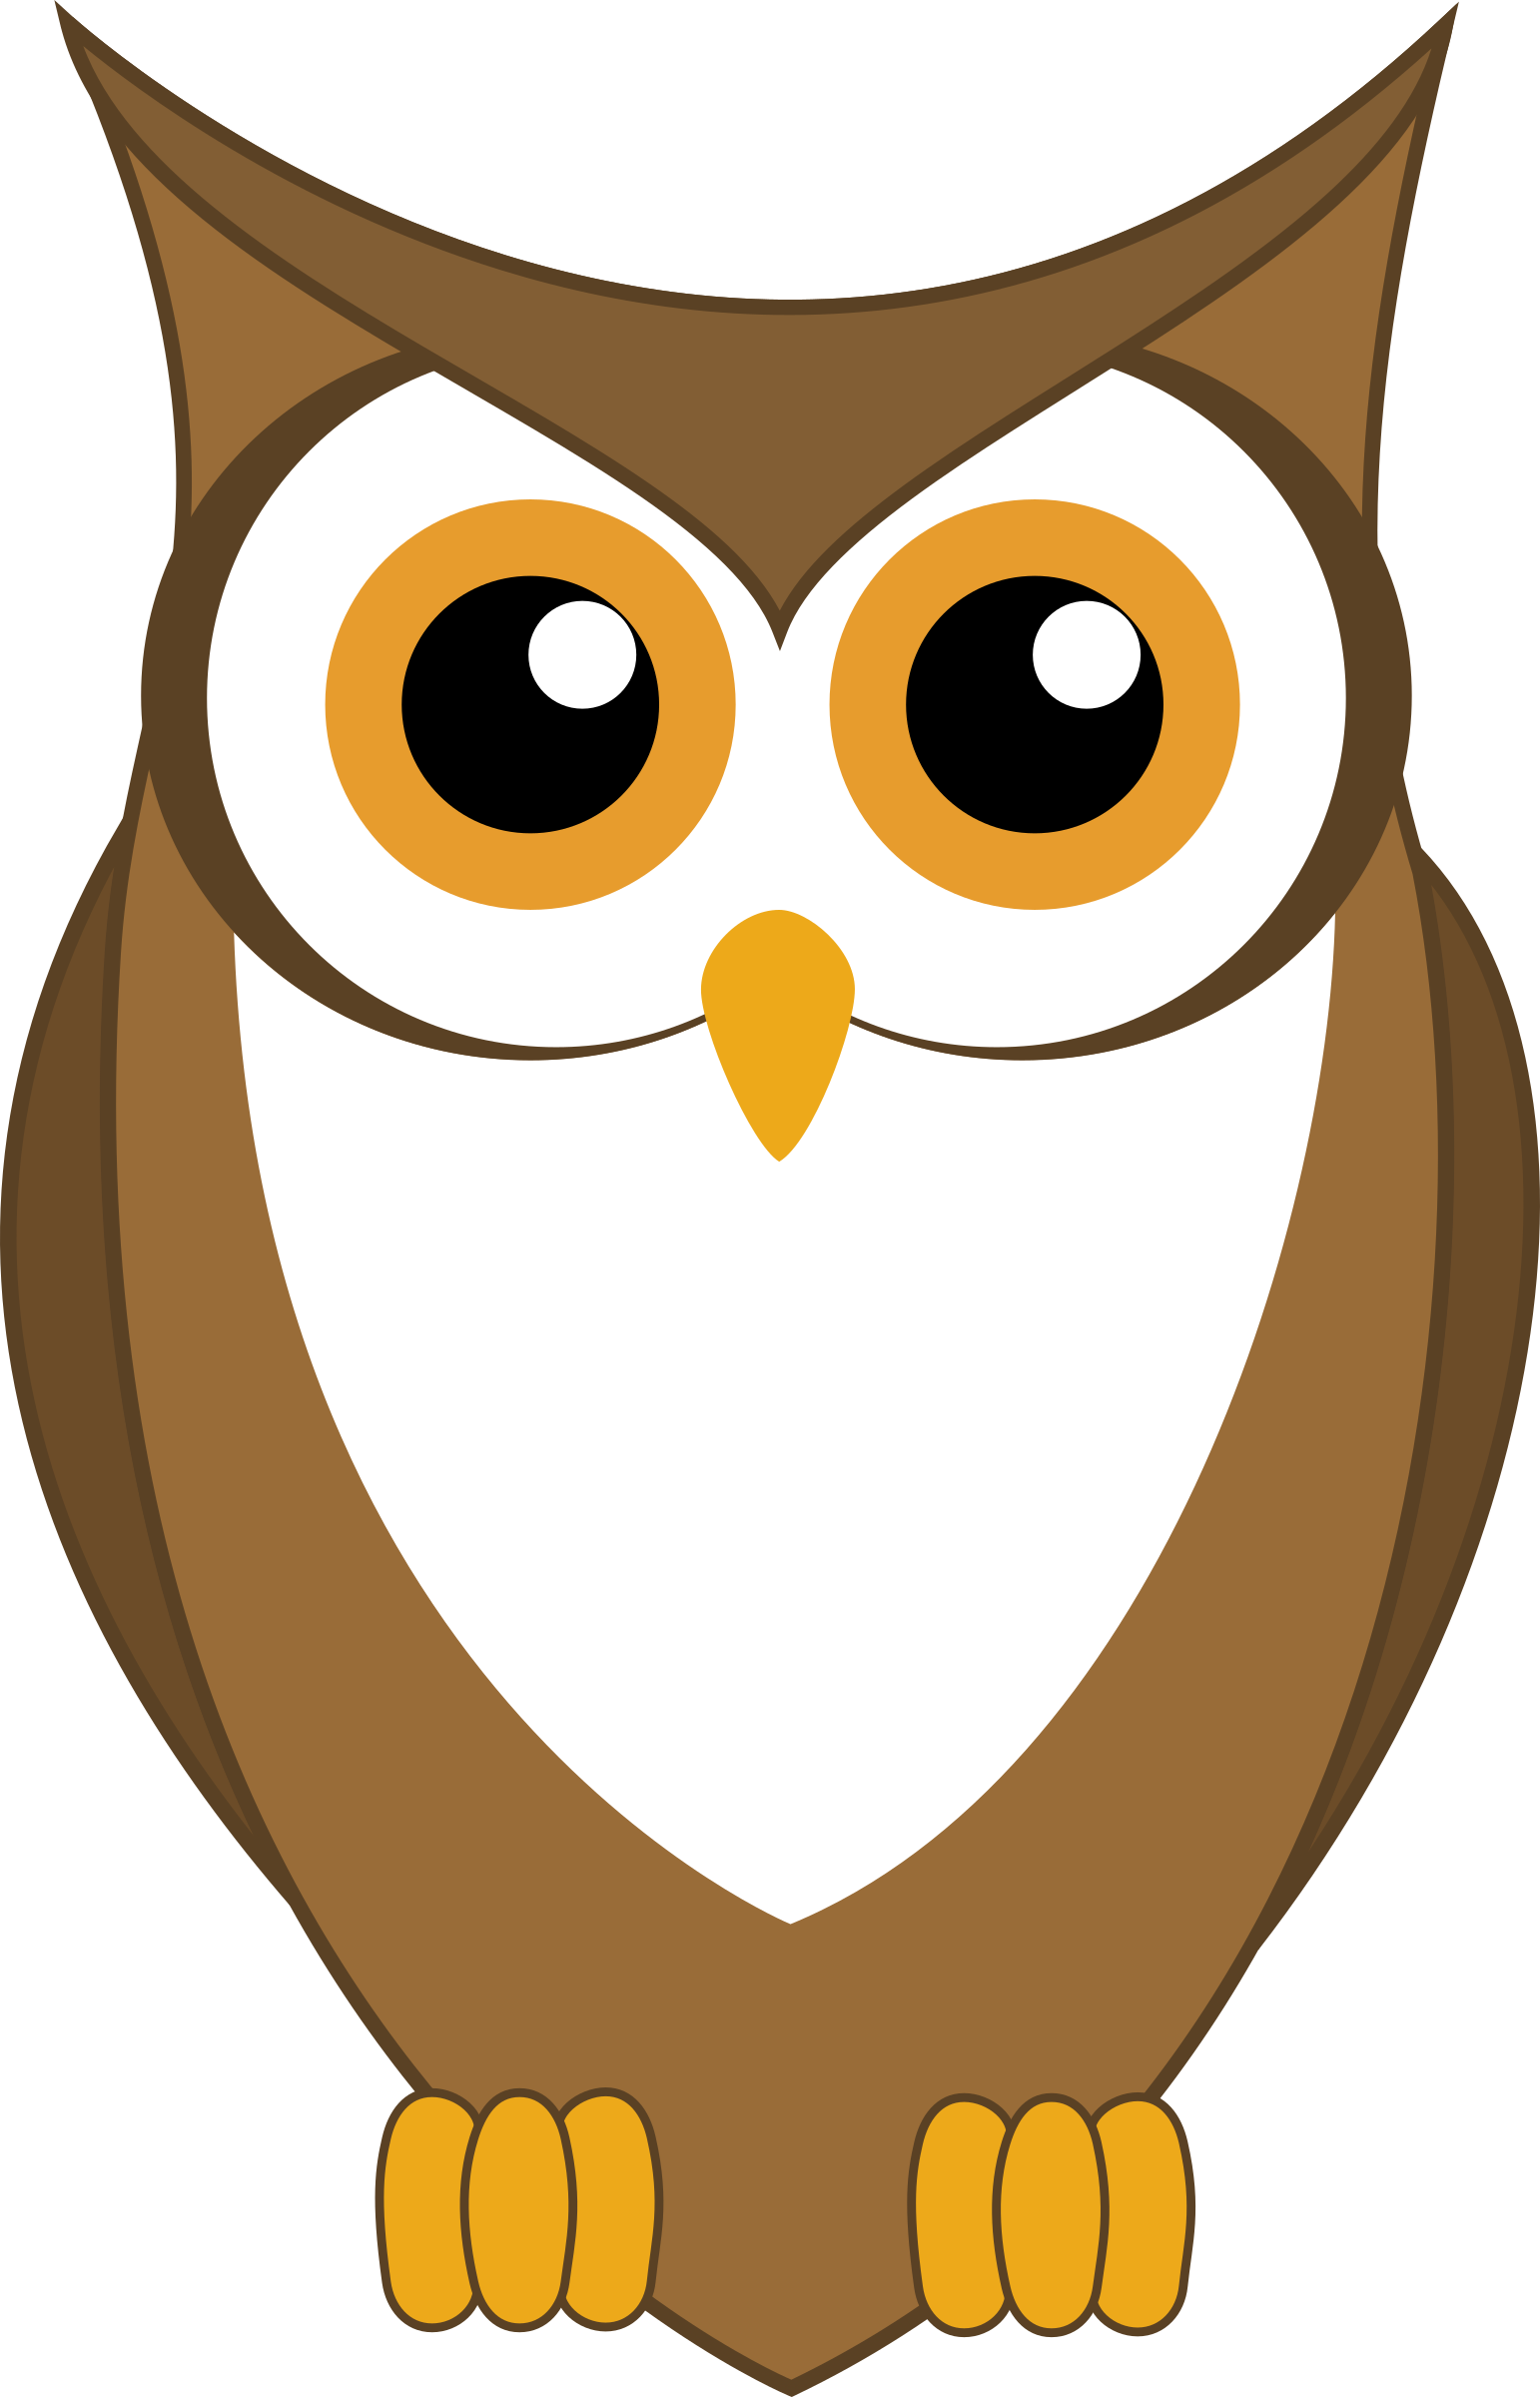 Owl Vector by Maiconfz